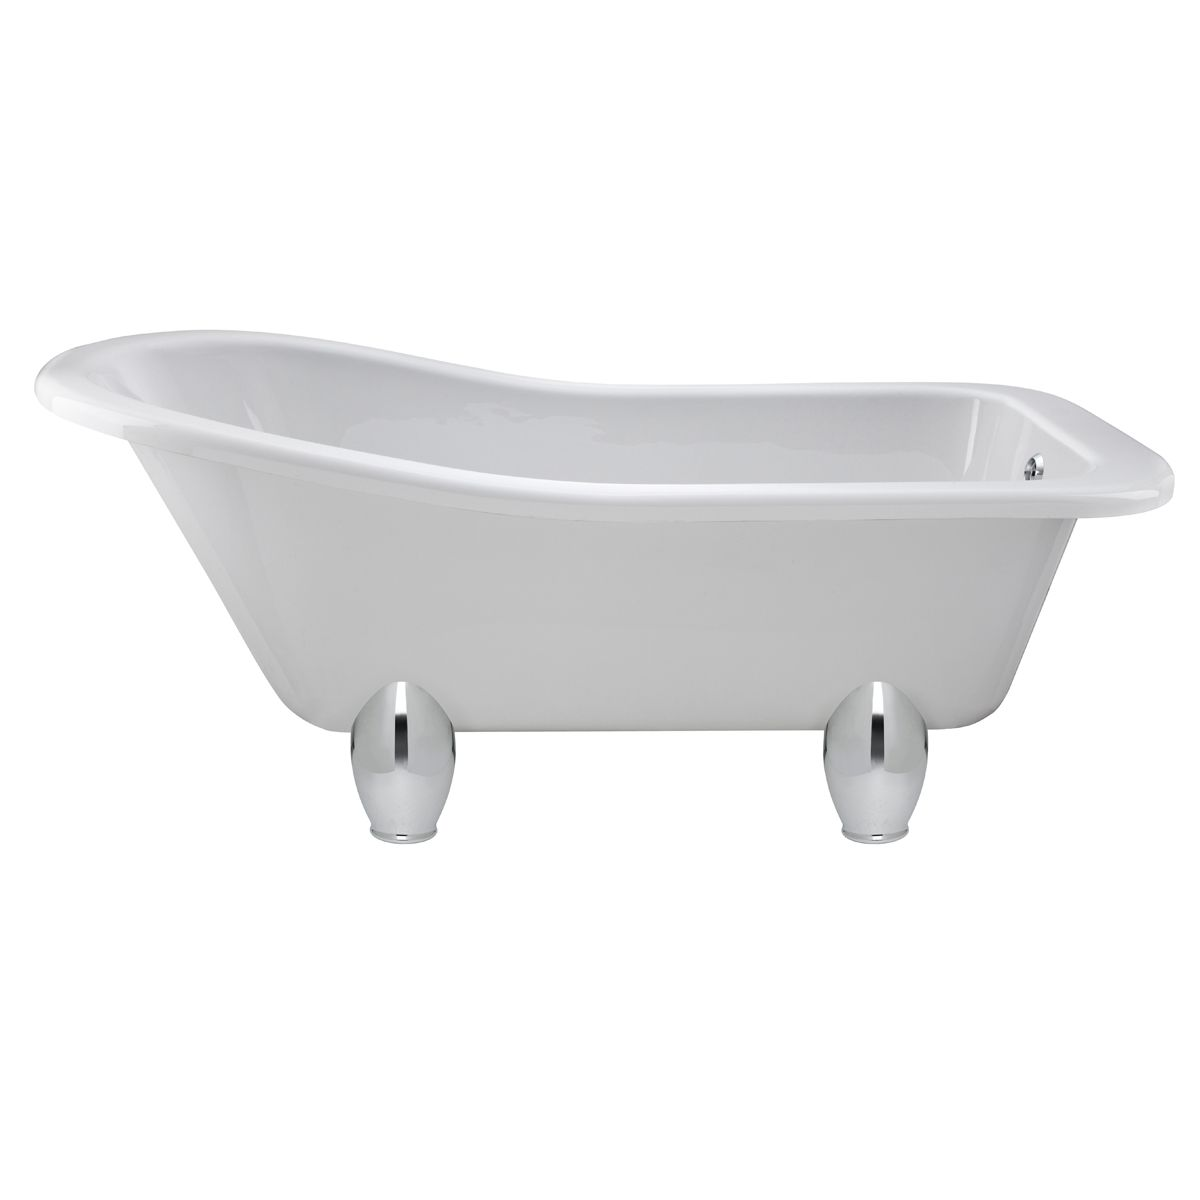 Hudson Reed Kensington Freestanding Slipper Bath with Deacon Leg Set